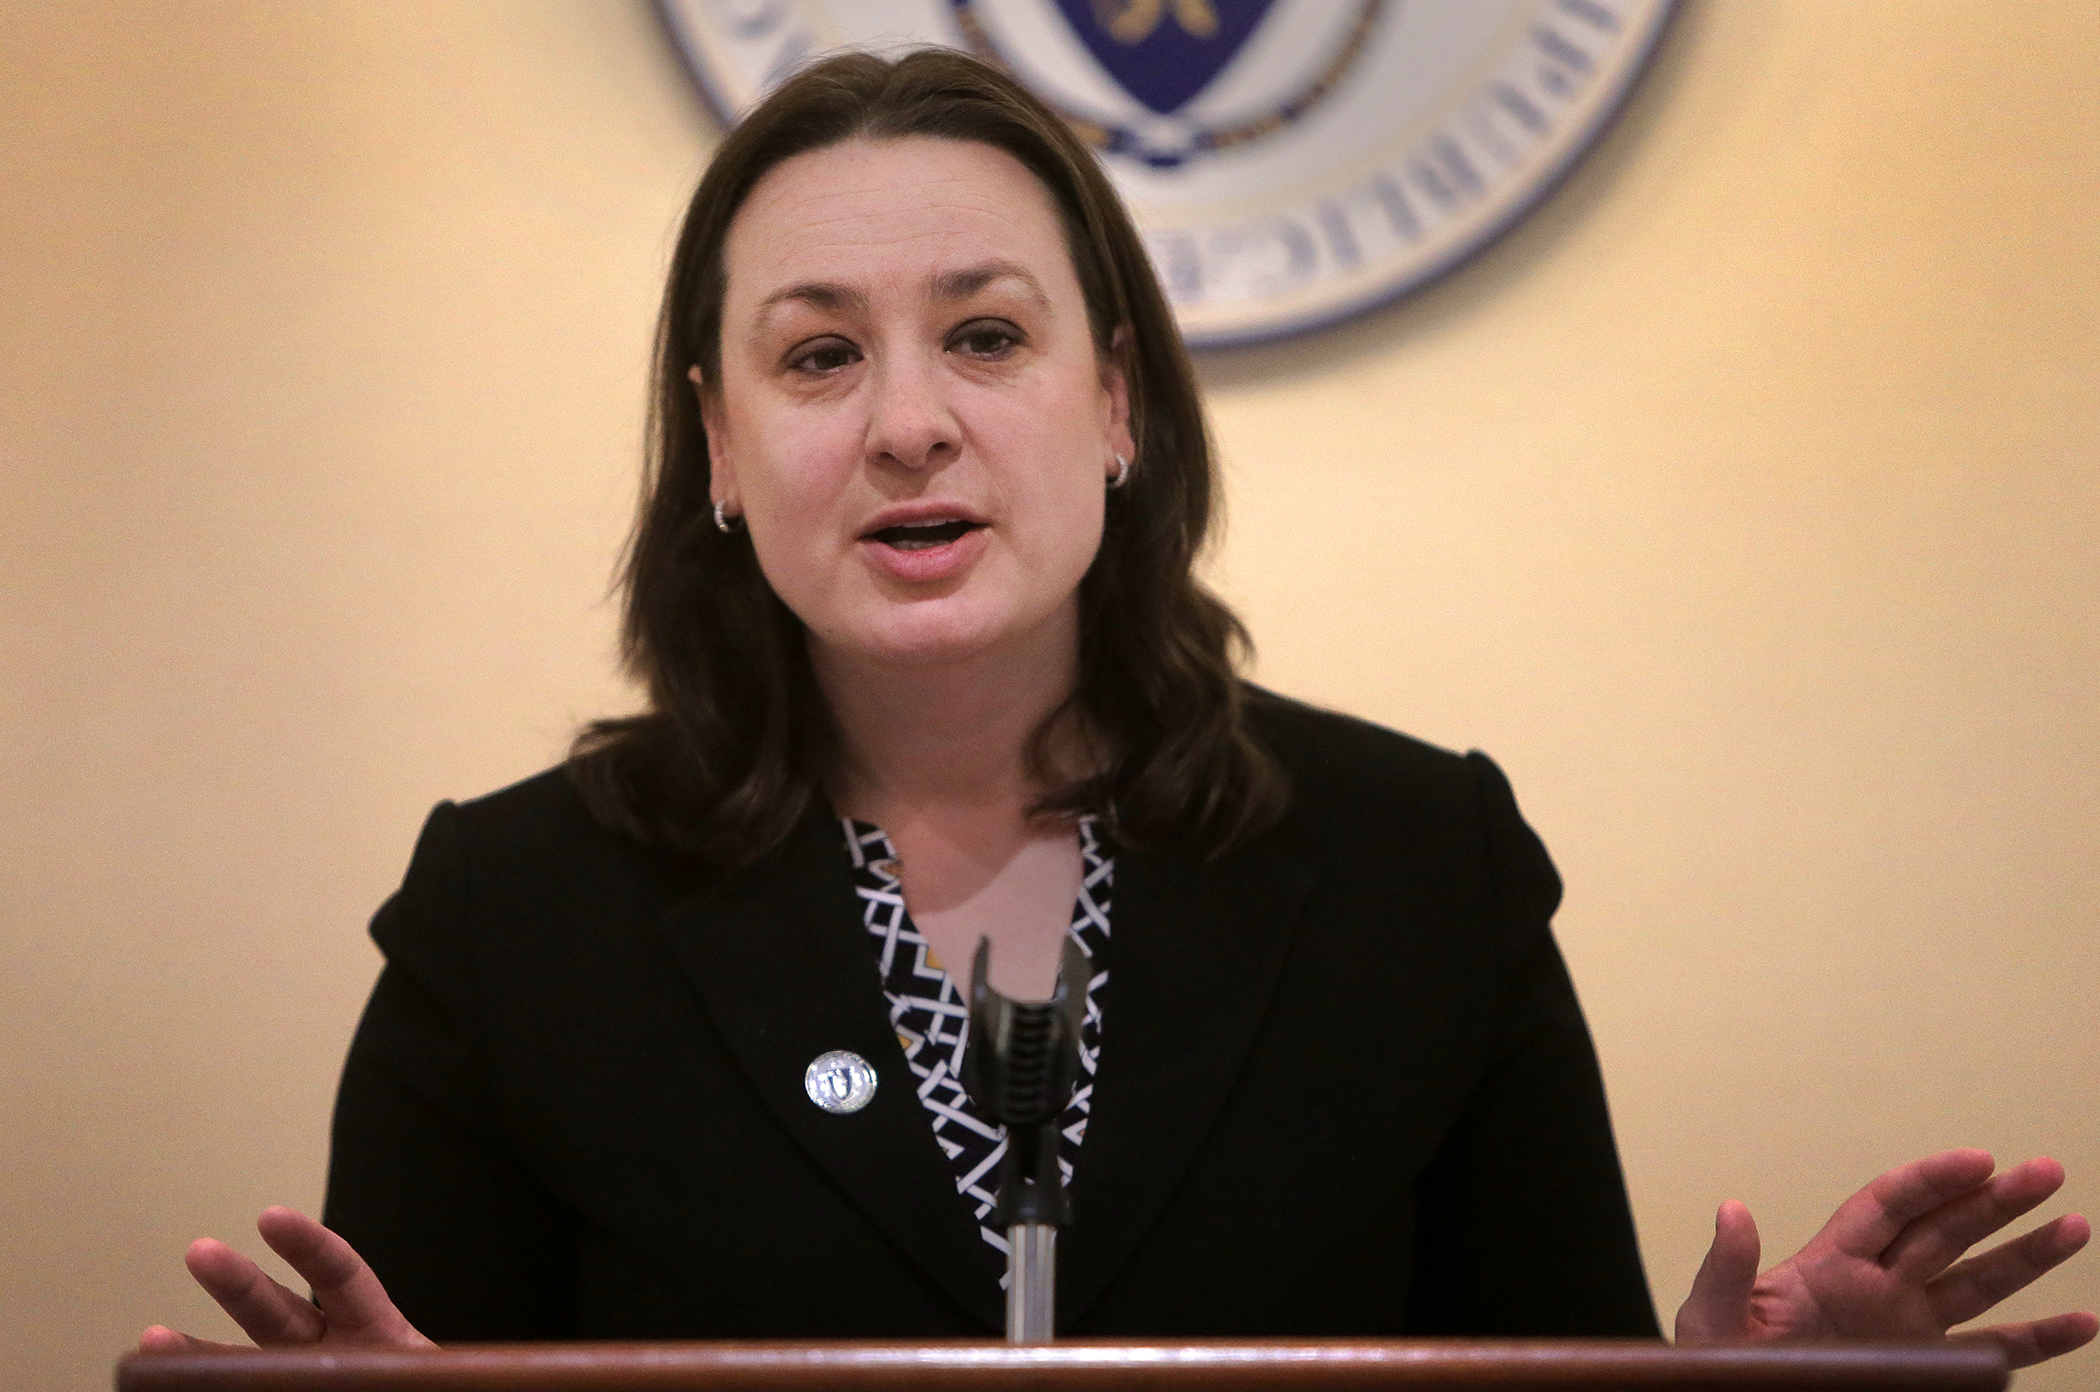 bostonglobe.com - Stephanie Ebbert - In the Mass. House, newly elected women are fighting to be heard